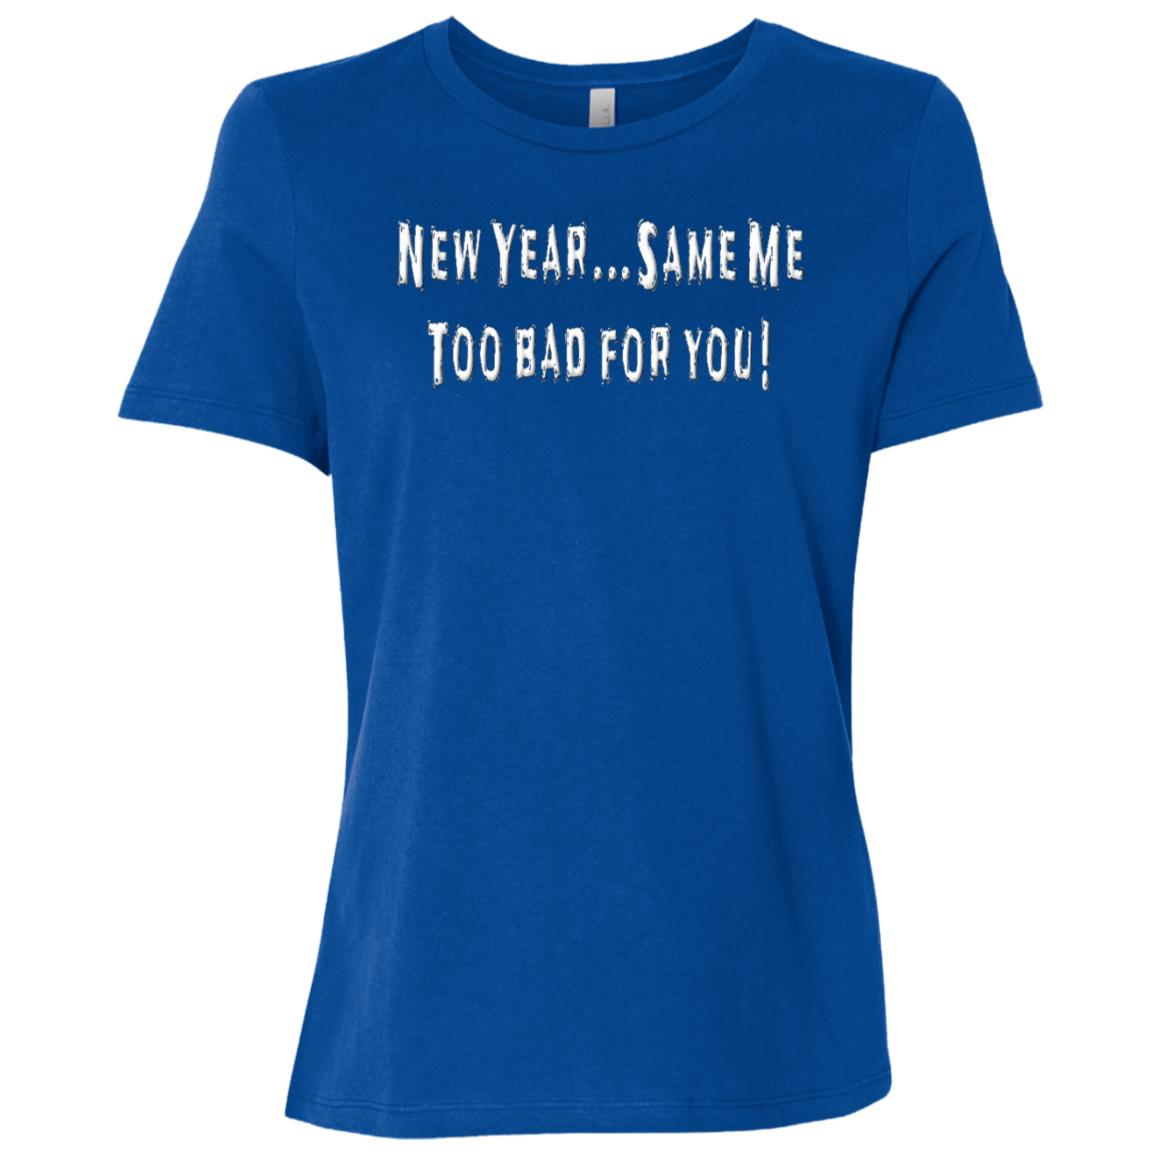 New Year Same Me Funny New Year Quotes Tee Women Short Sleeve T-Shirt